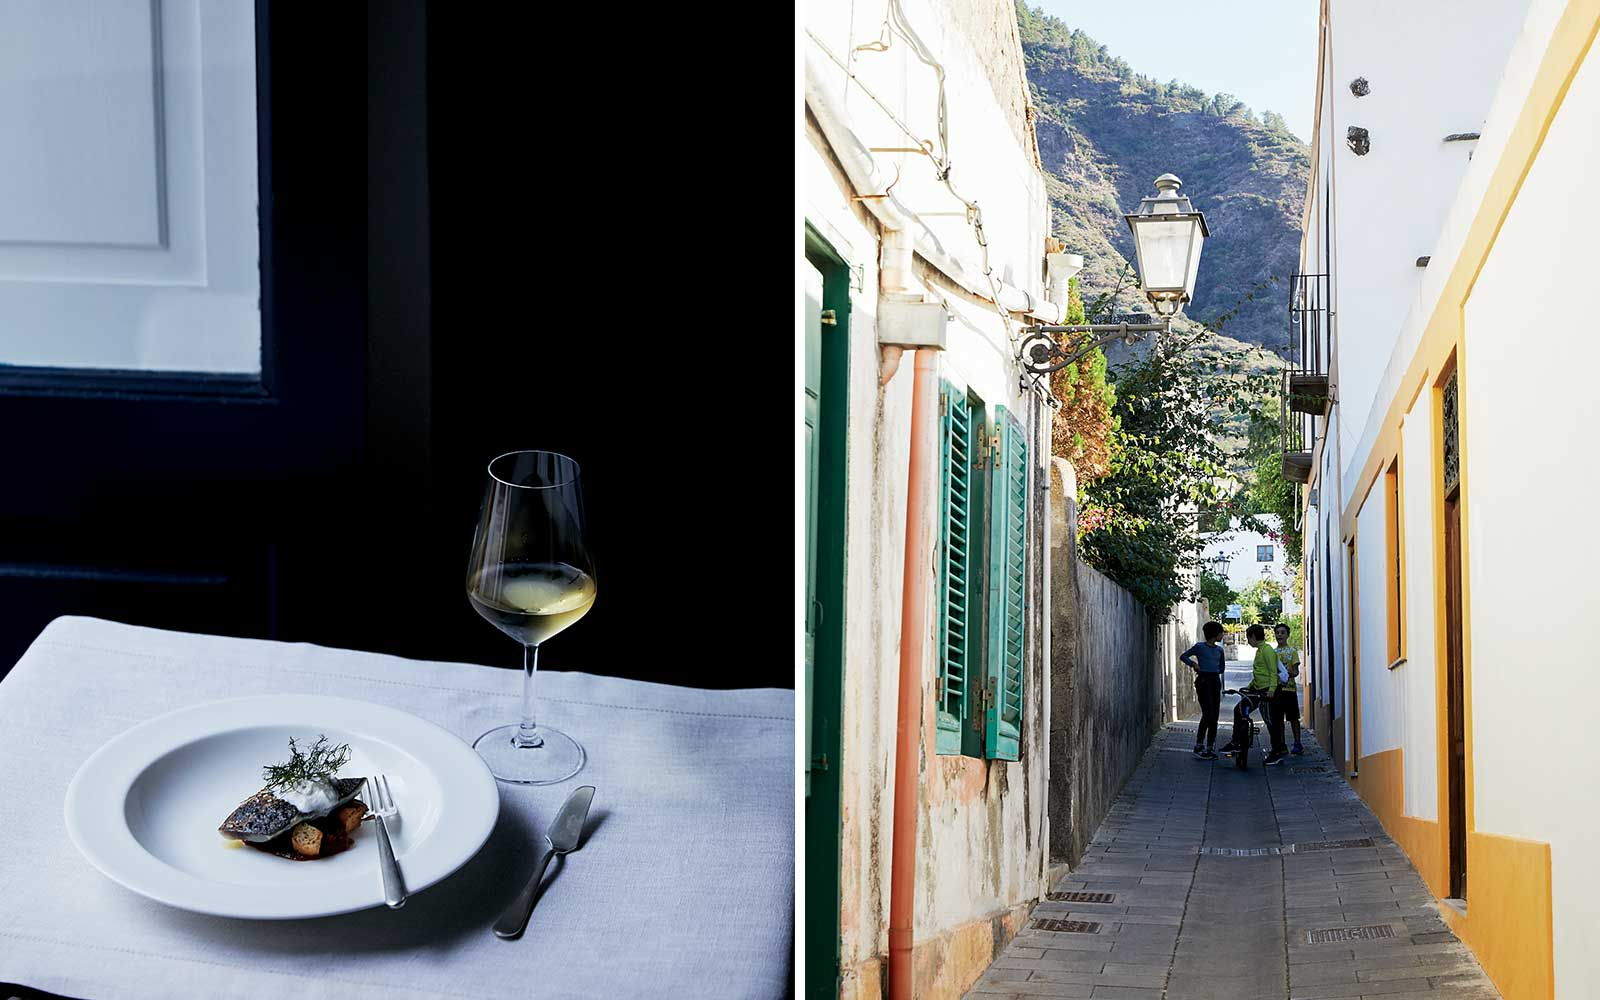 Signum Restaurant and the streets of Salina, in Italy's Aeolian Islands